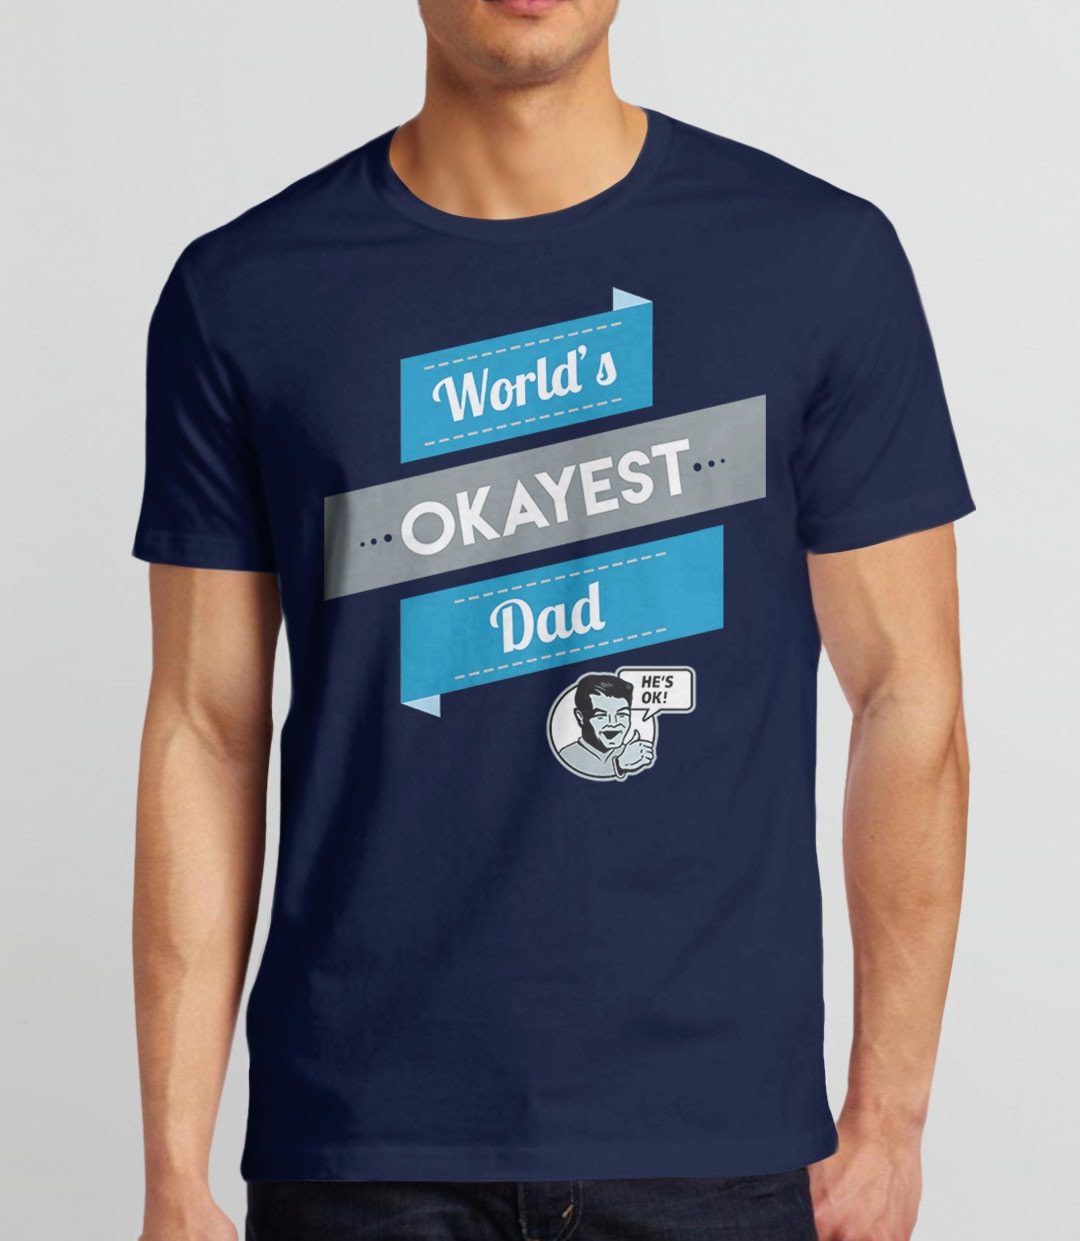 Worlds Okayest Dad T-Shirt | Funny Gift for Dad Shirt for Fathers Day with humor quote. Makes a great humorous dad to be or new dad gift. Pictured: Navy Mens Tee.